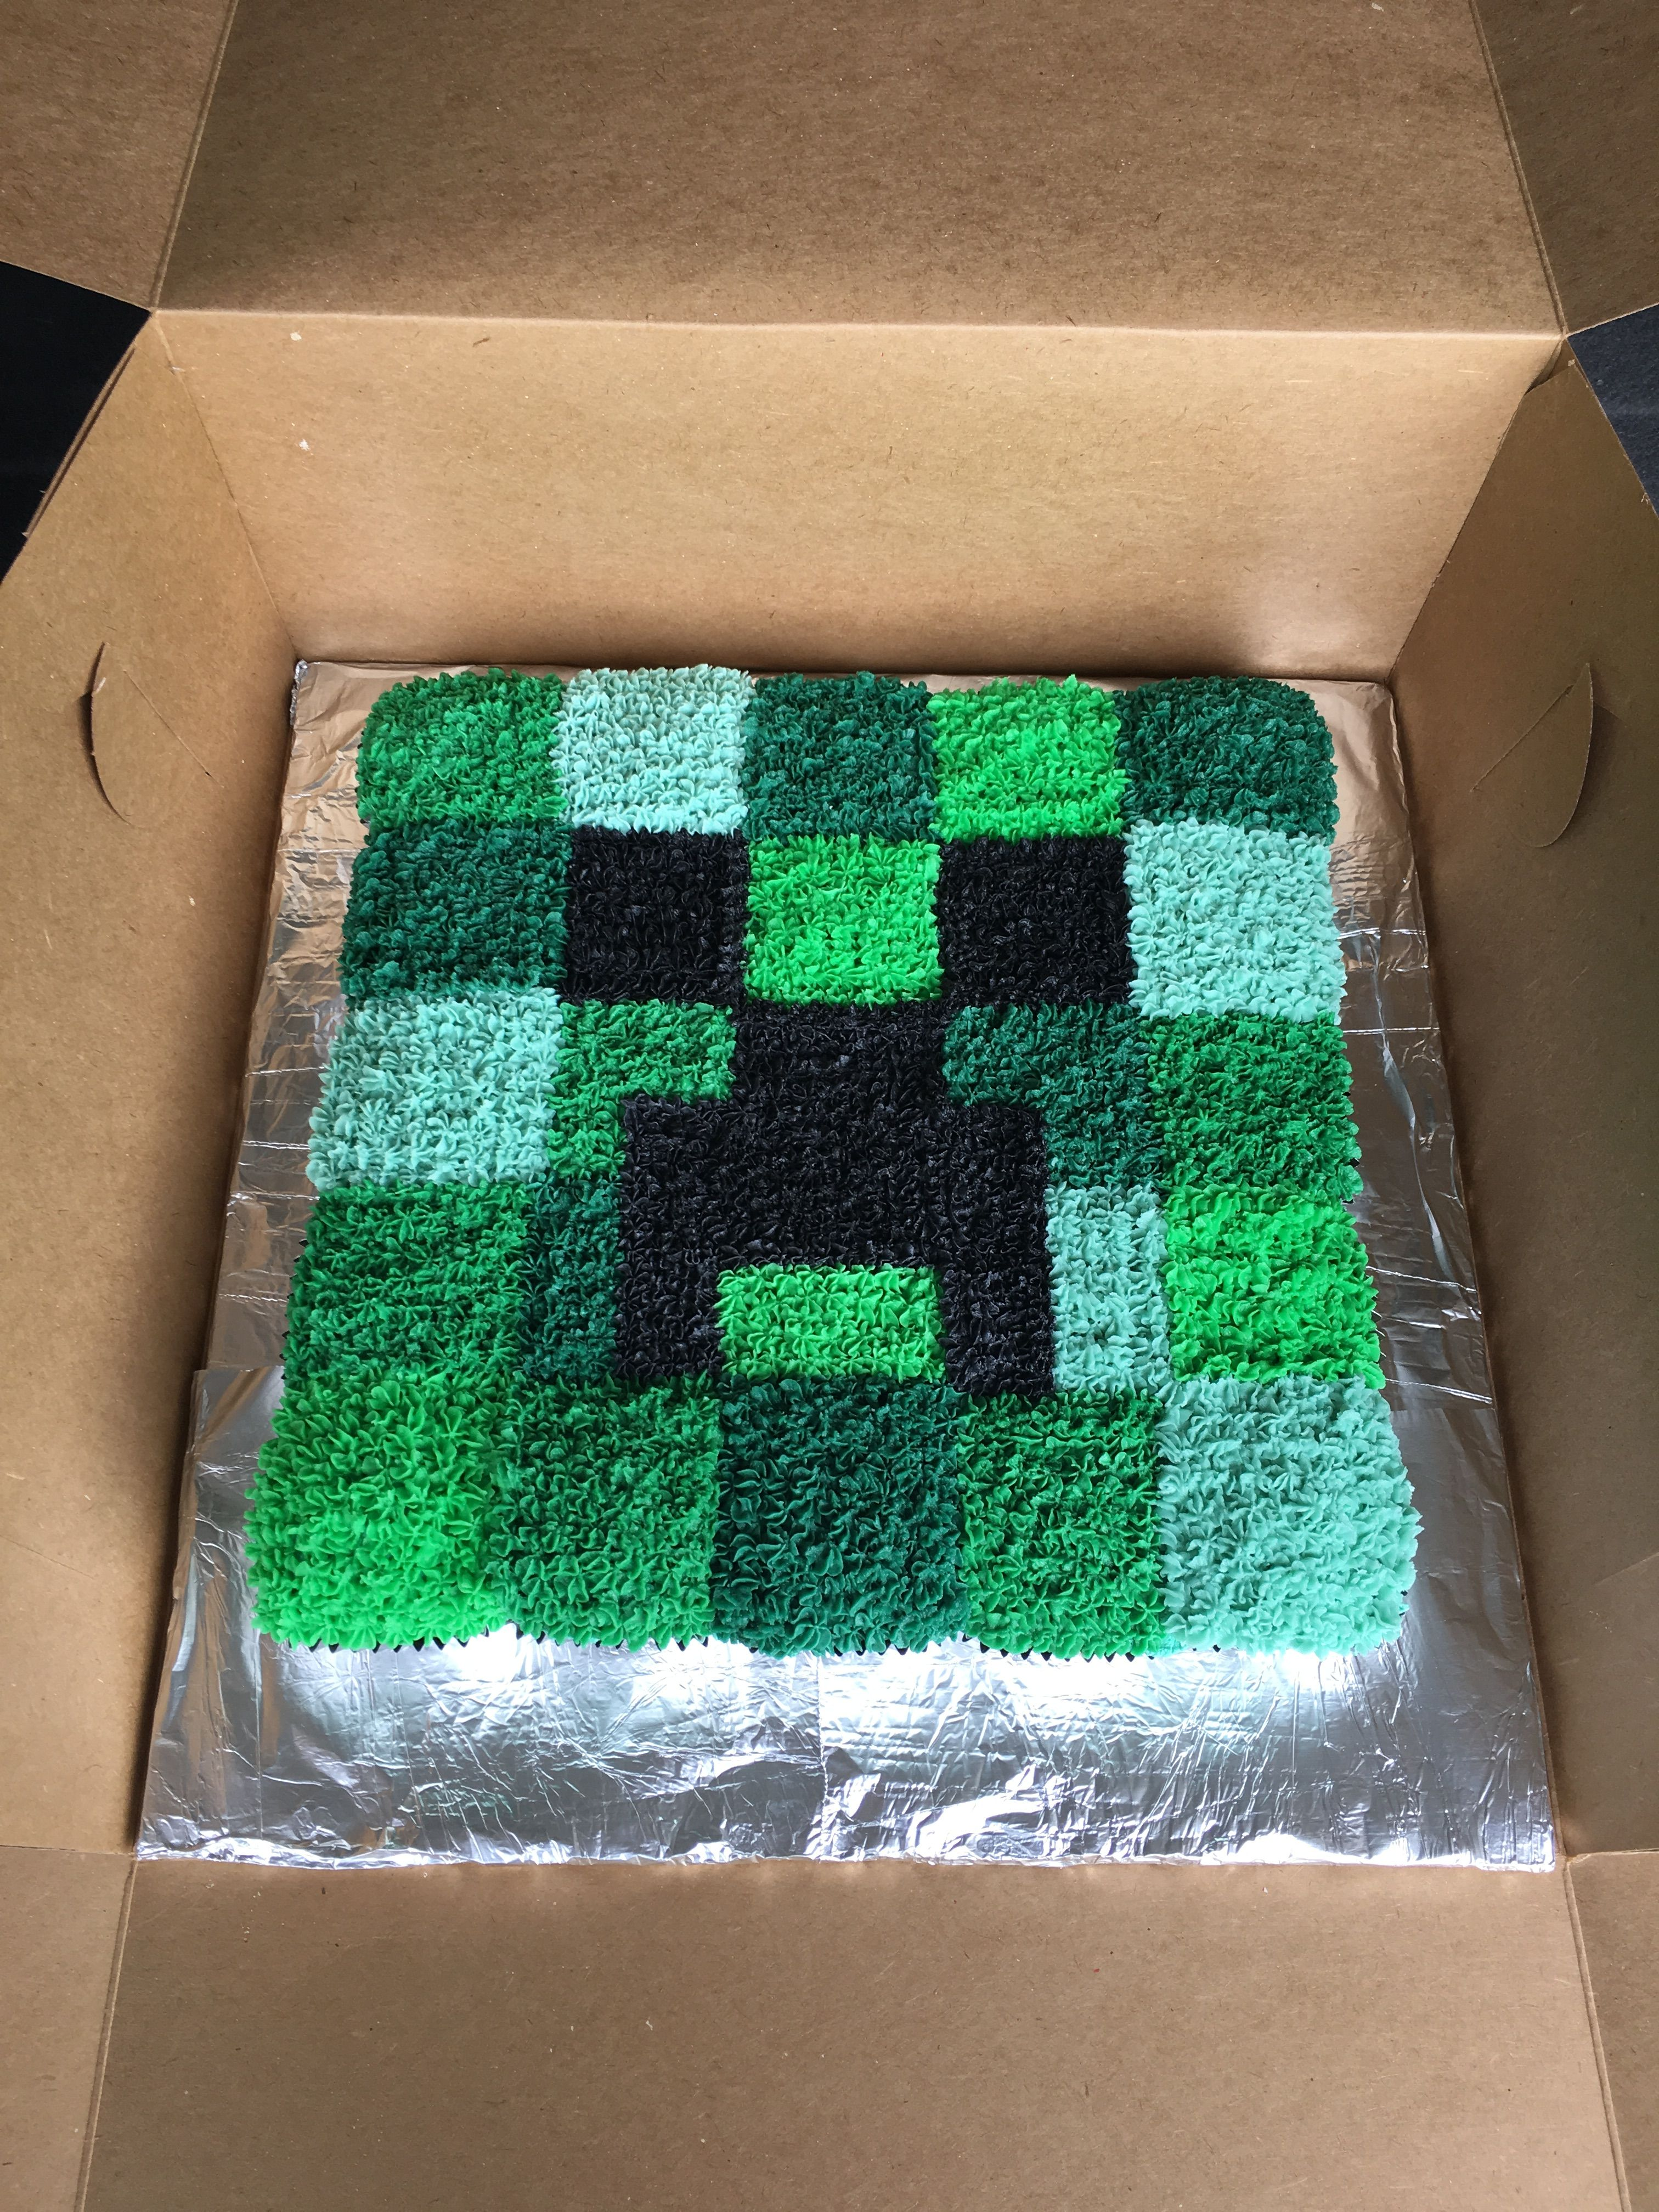 Minecraft Creeper Pull Apart Cupcake Cake Made Using Square